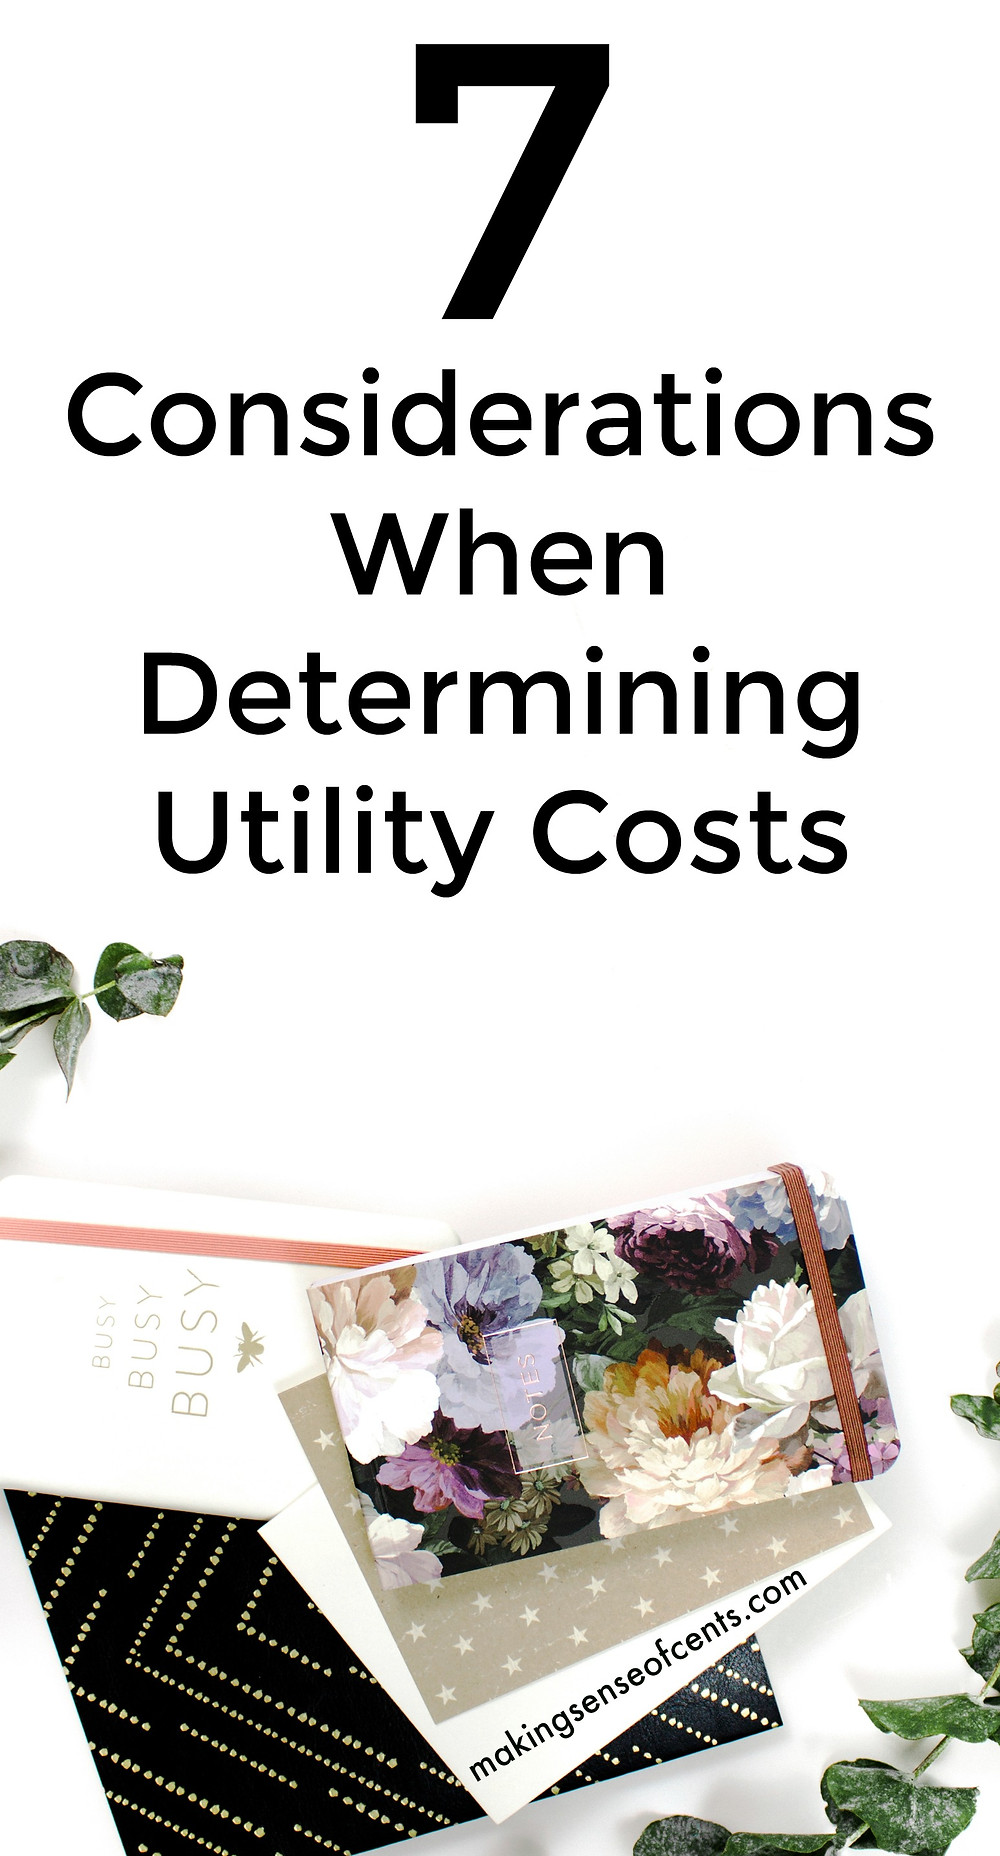 Check out this list of 7 considerations when determining utility costs. This is a great list!